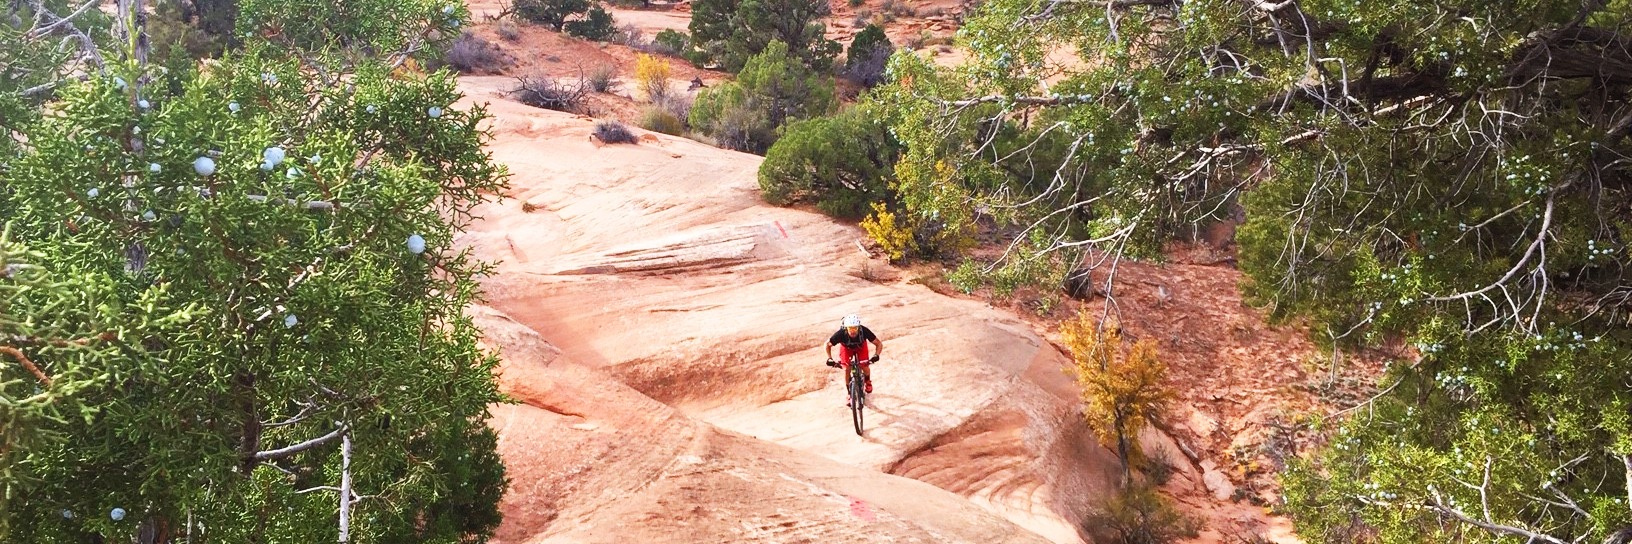 A rider swoops through a fast rollercoaster slickrock section of Ramblin during a guided tour of Navajo Rocks northwest of Moab, UT